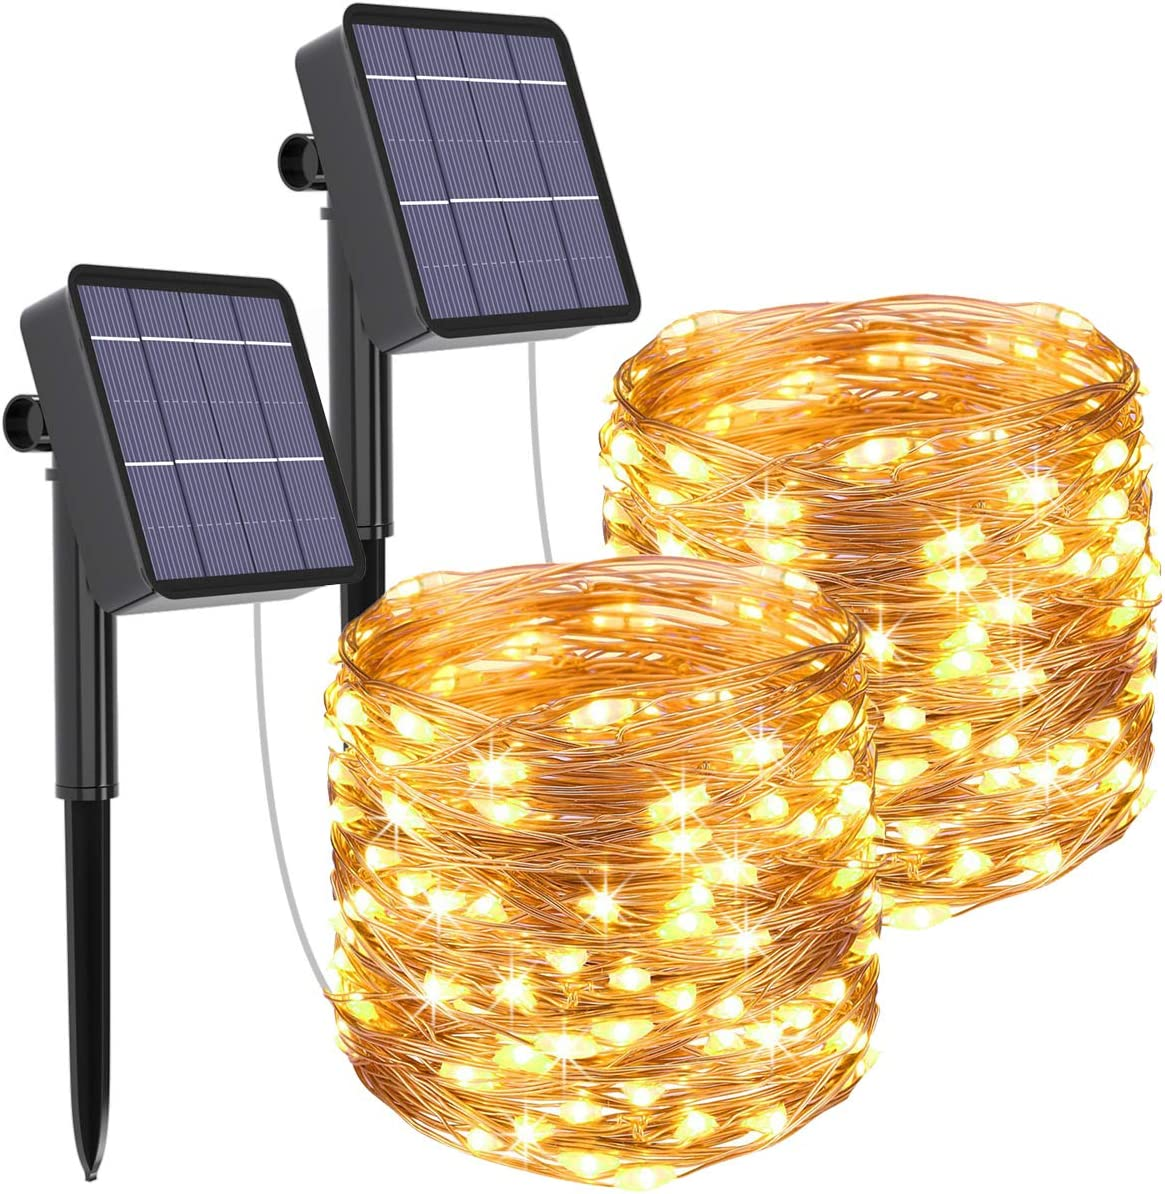 Solar String Lights Outdoor, 2-Packs 480LED Ultra Long Solar Fairy Lights 8 Modes Copper Wire Solar Powered Fairy Lights Outdoor Waterproof for Christmas Garden Yard Party Patio Tree (Warm White)